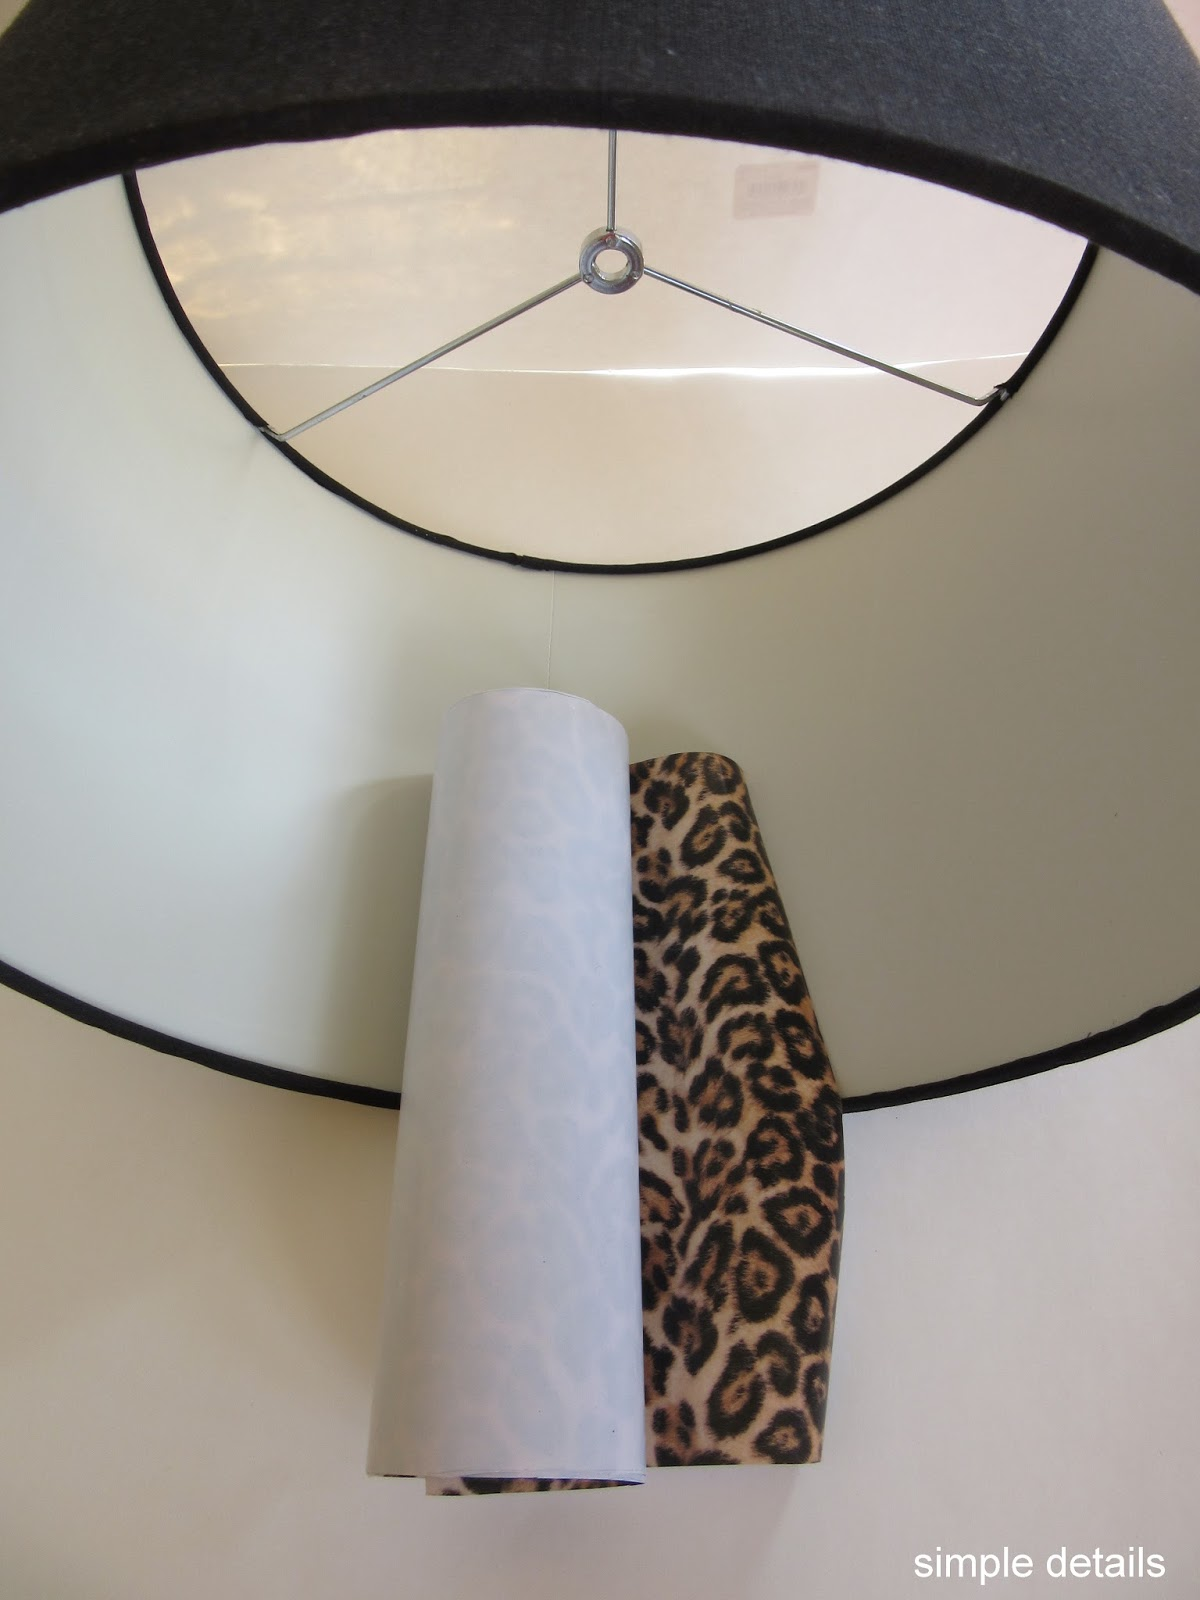 Simple details diy lamp shade with leopard print lining for Floor lamp with leopard shade